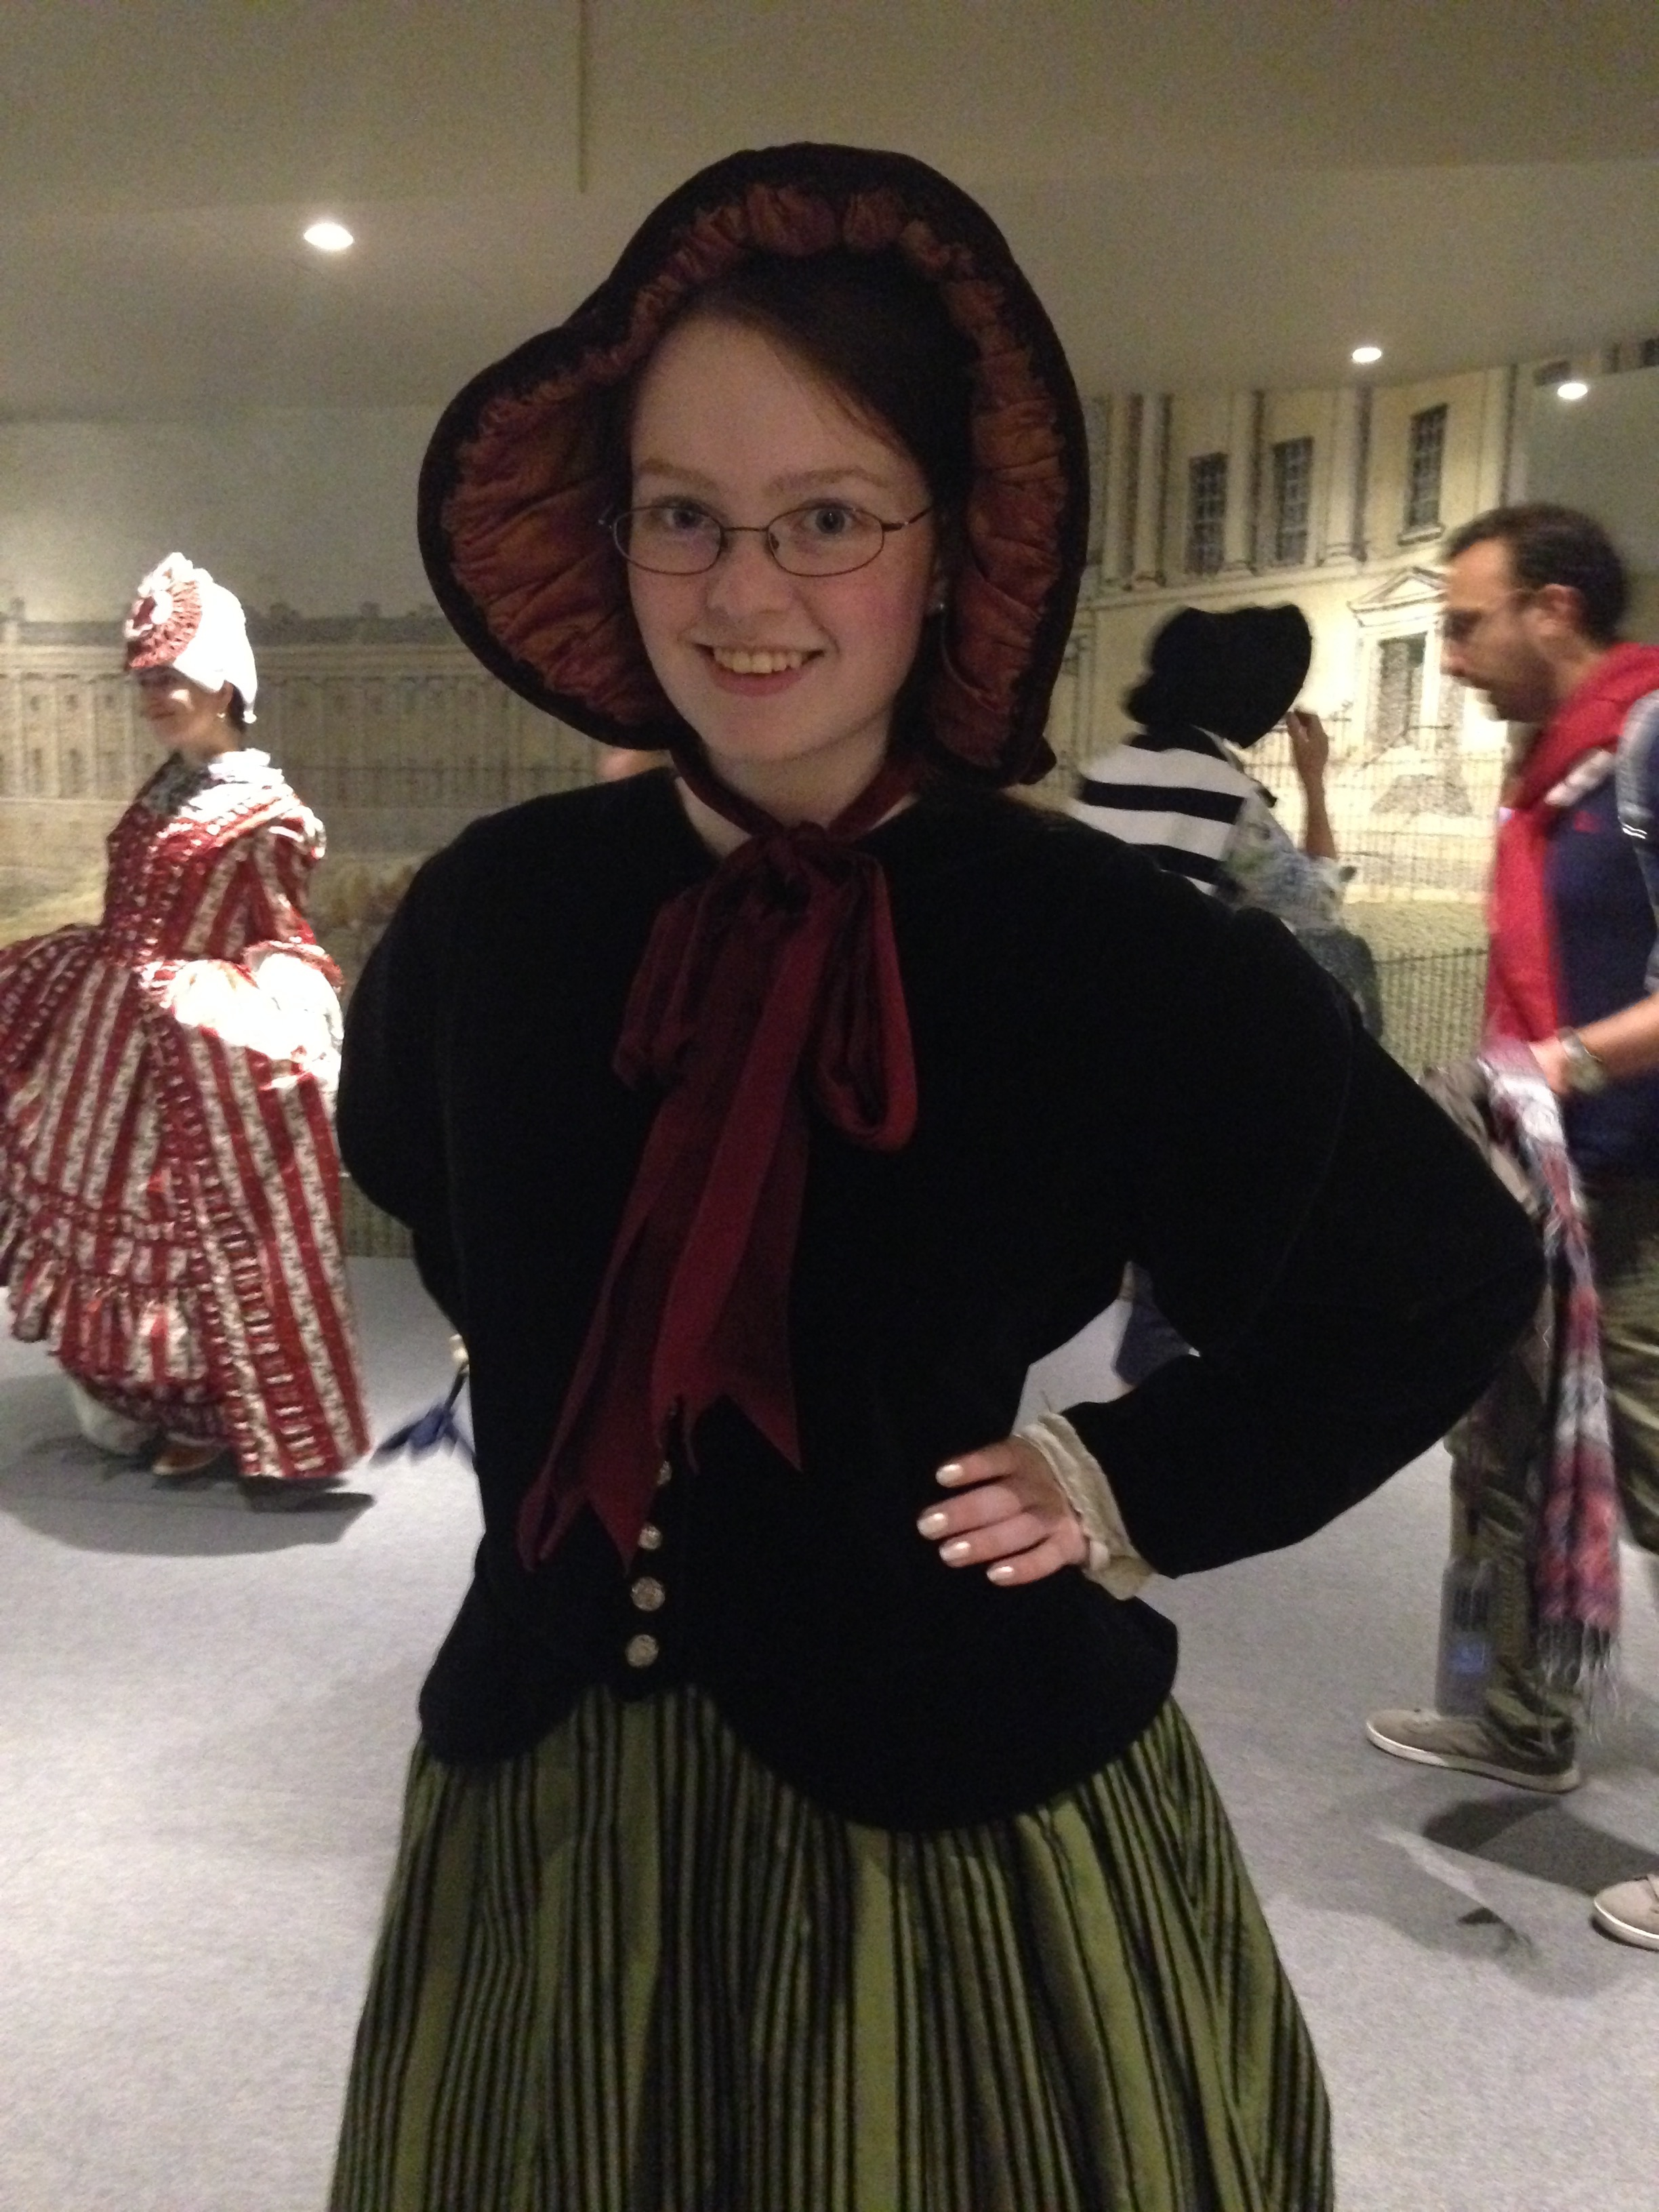 Me in some sort of 19th-century garb, with a bonnet.